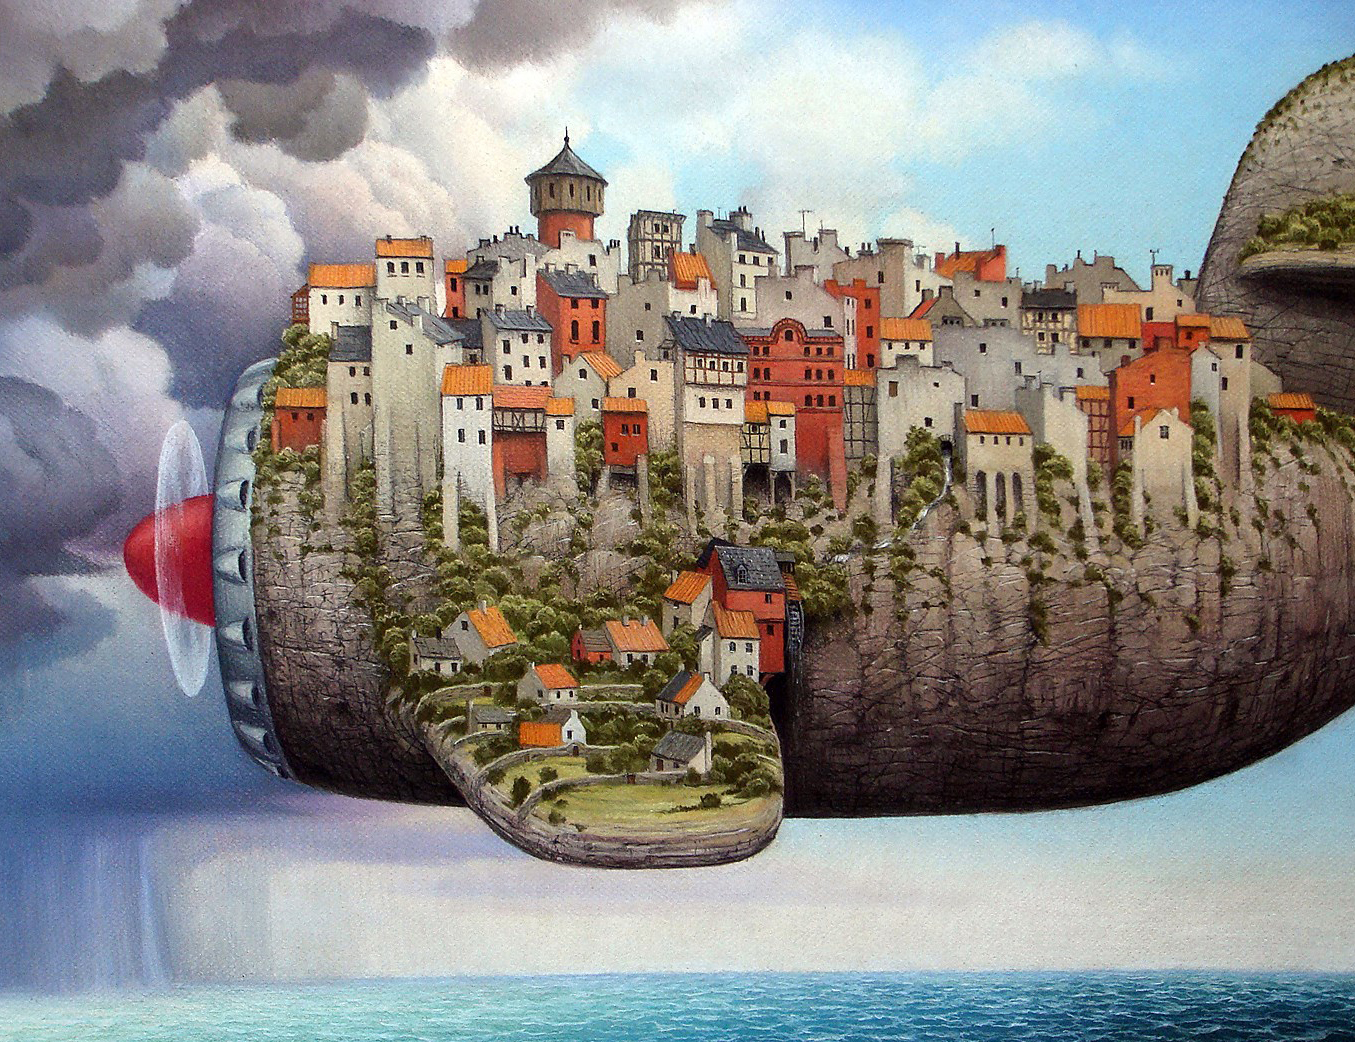 تصویر سازی - خیالباف - daydreamer - jacek yerka - illustration